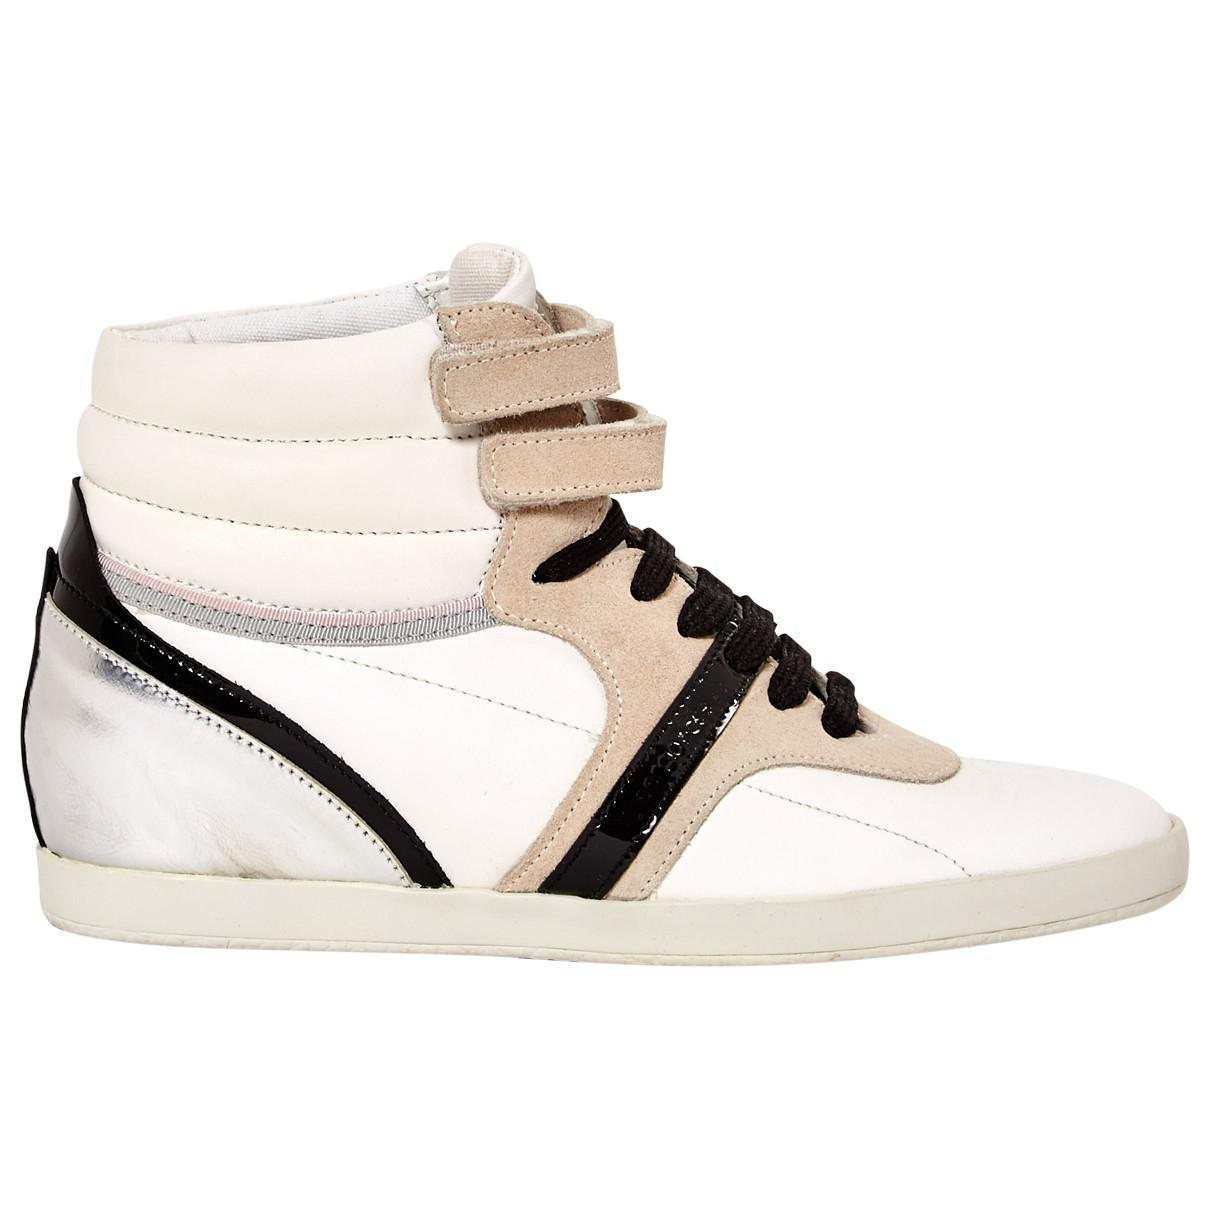 Pre-owned - Leather trainers Sergio Rossi 9sVYDi